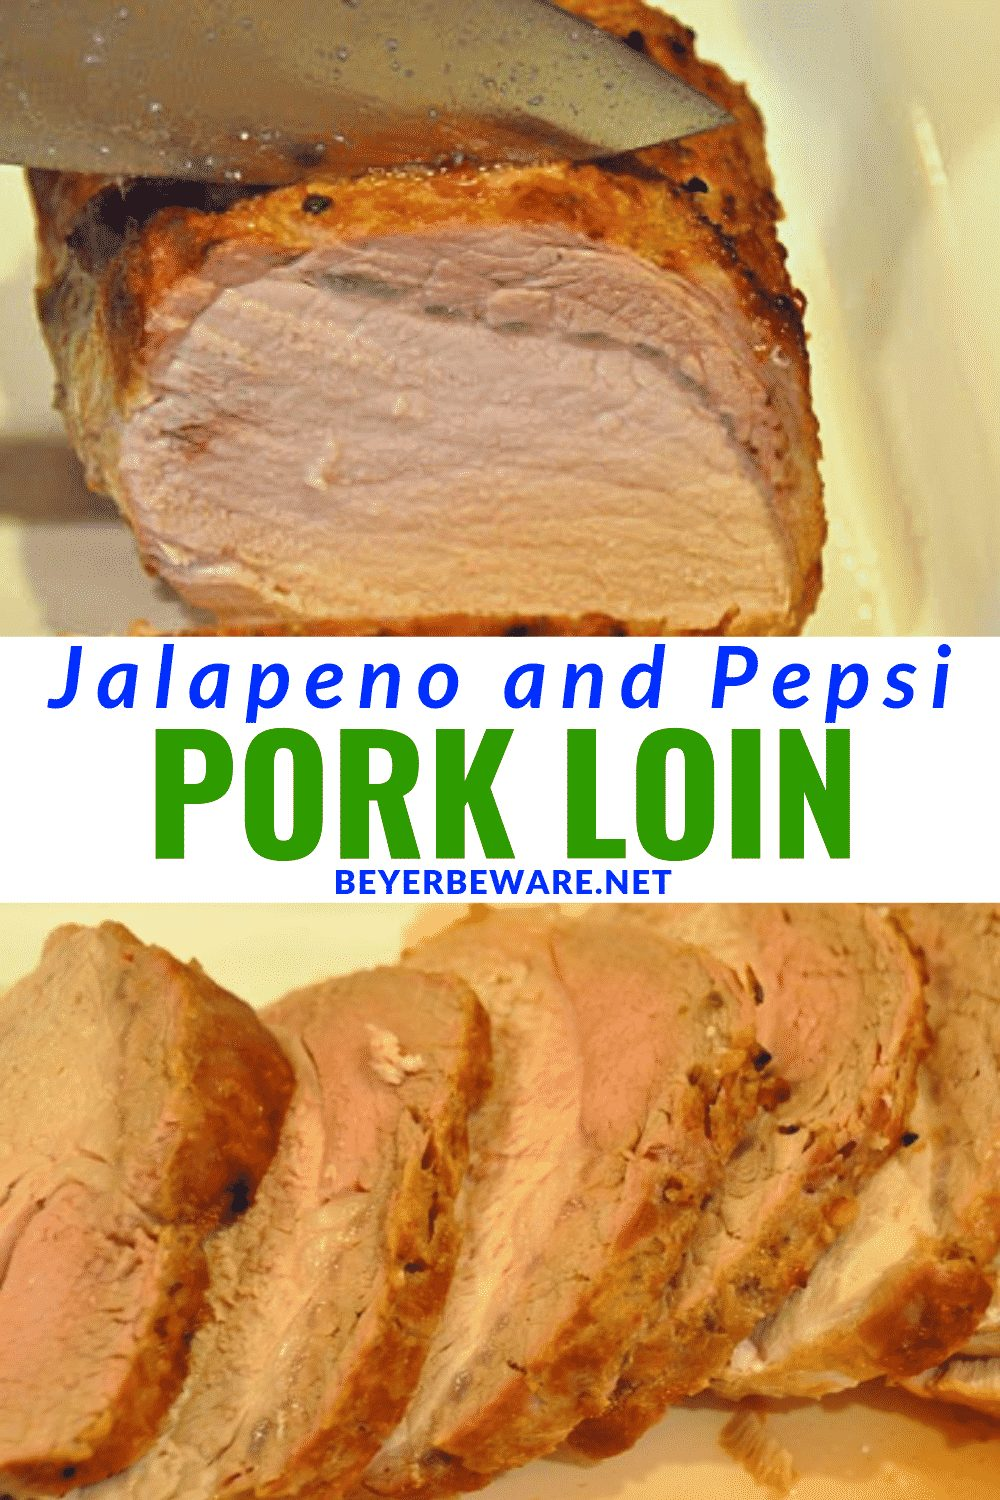 Jalapeno and Pepsi Pork Loin is a unique oven-baked pork loin recipe the sweetness of Pepsi with the heat of the jalapeno to make a juicy and flavorful marinade for a pork loin. #pork #PorkLoin #Recipes #OvenBaked #PorkRecipes